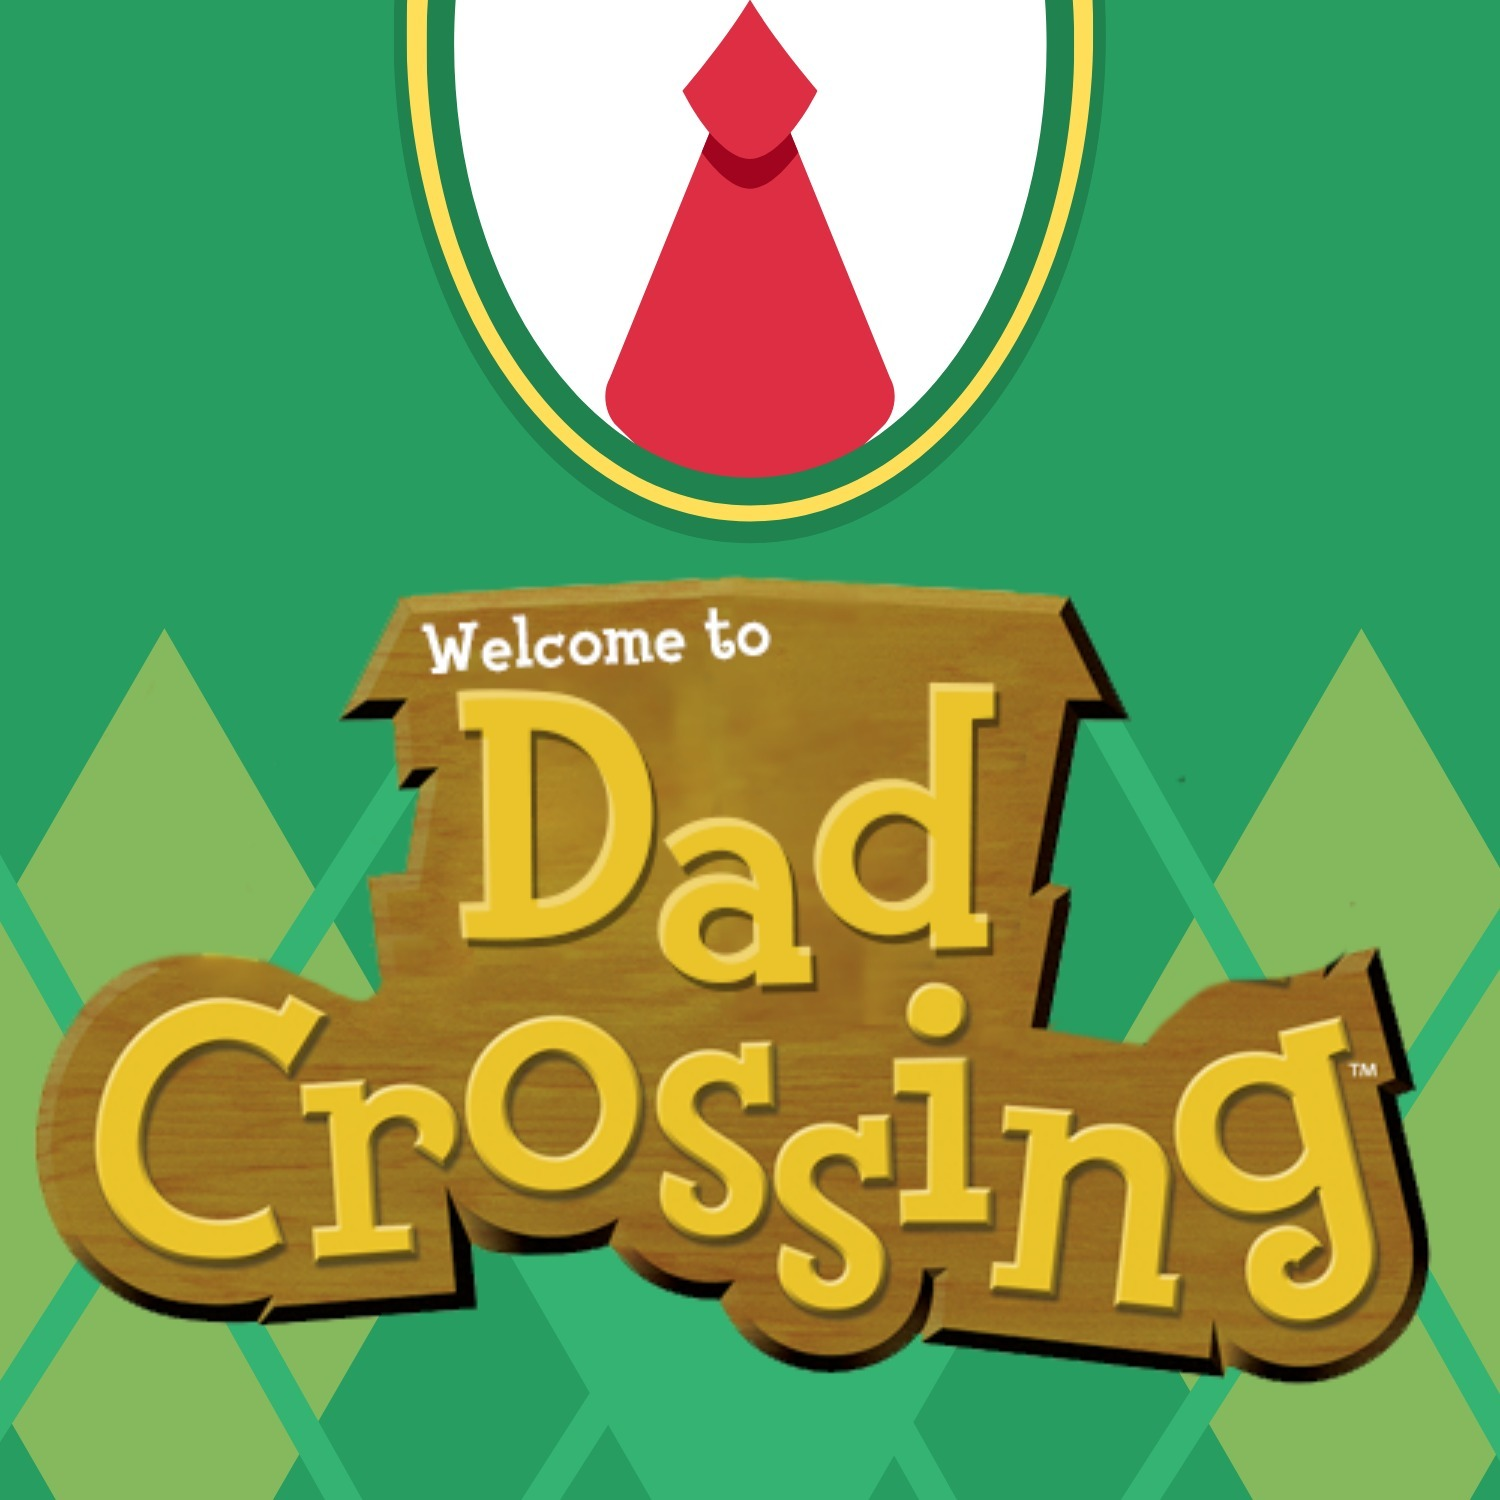 Dad Crossing #032: Welcome to 2020 2.0